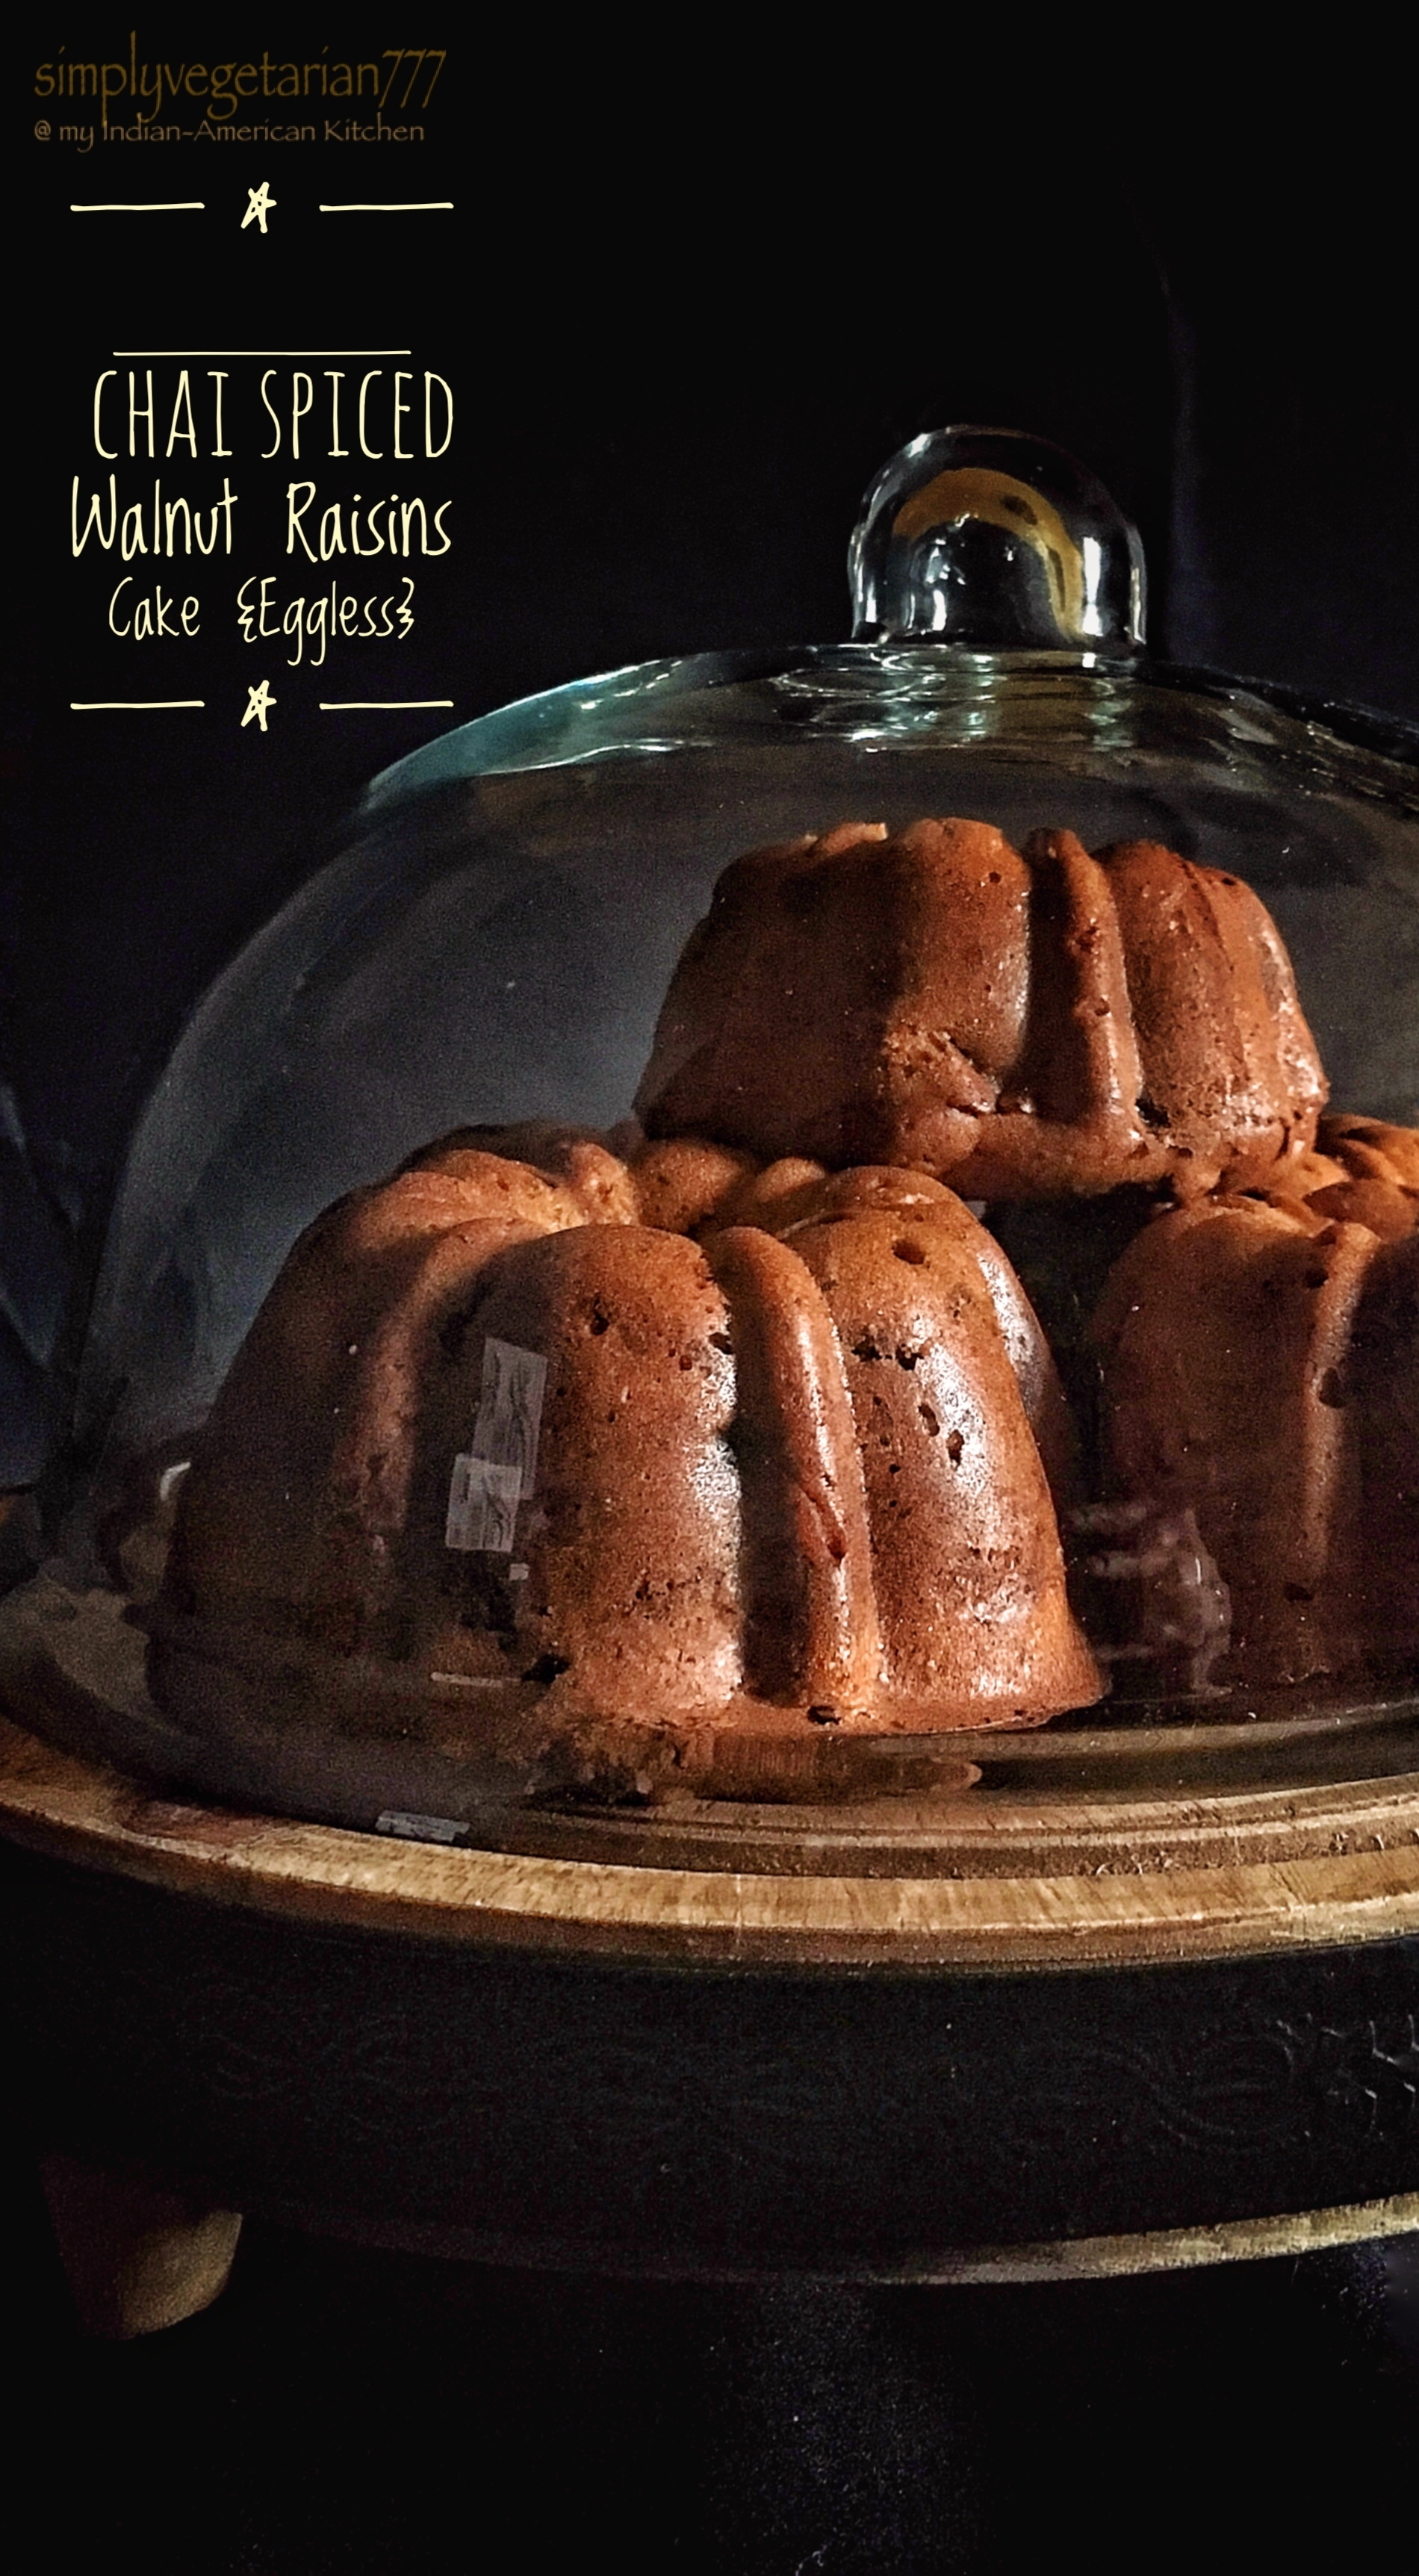 Chai Spiced Walnut Raisins Cake {Eggless} with Cinnamon Glaze